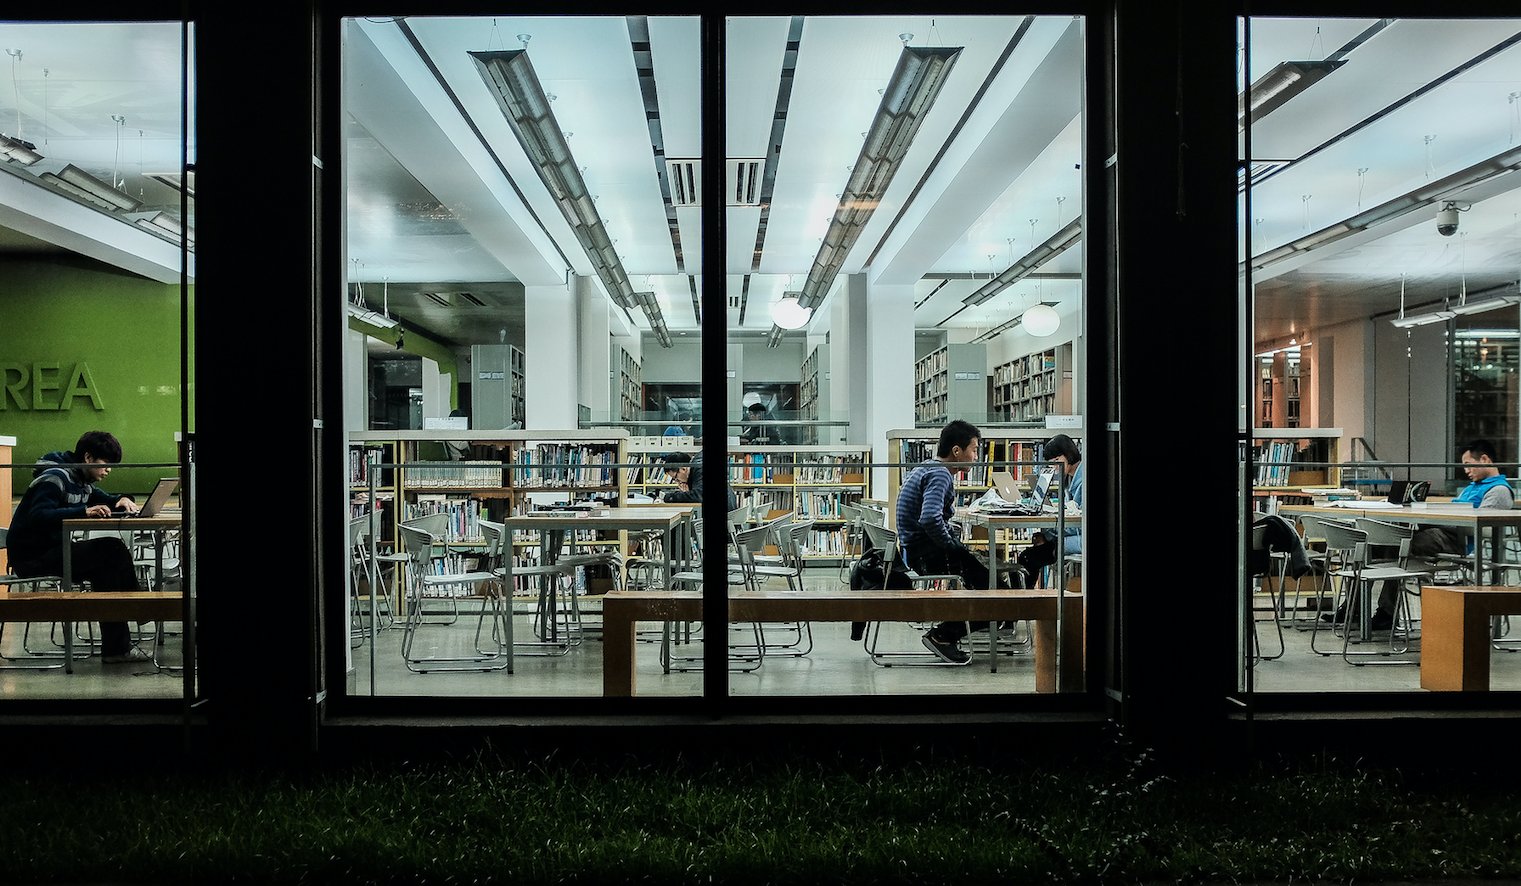 Students working in a library. Image by Matthias Ripp